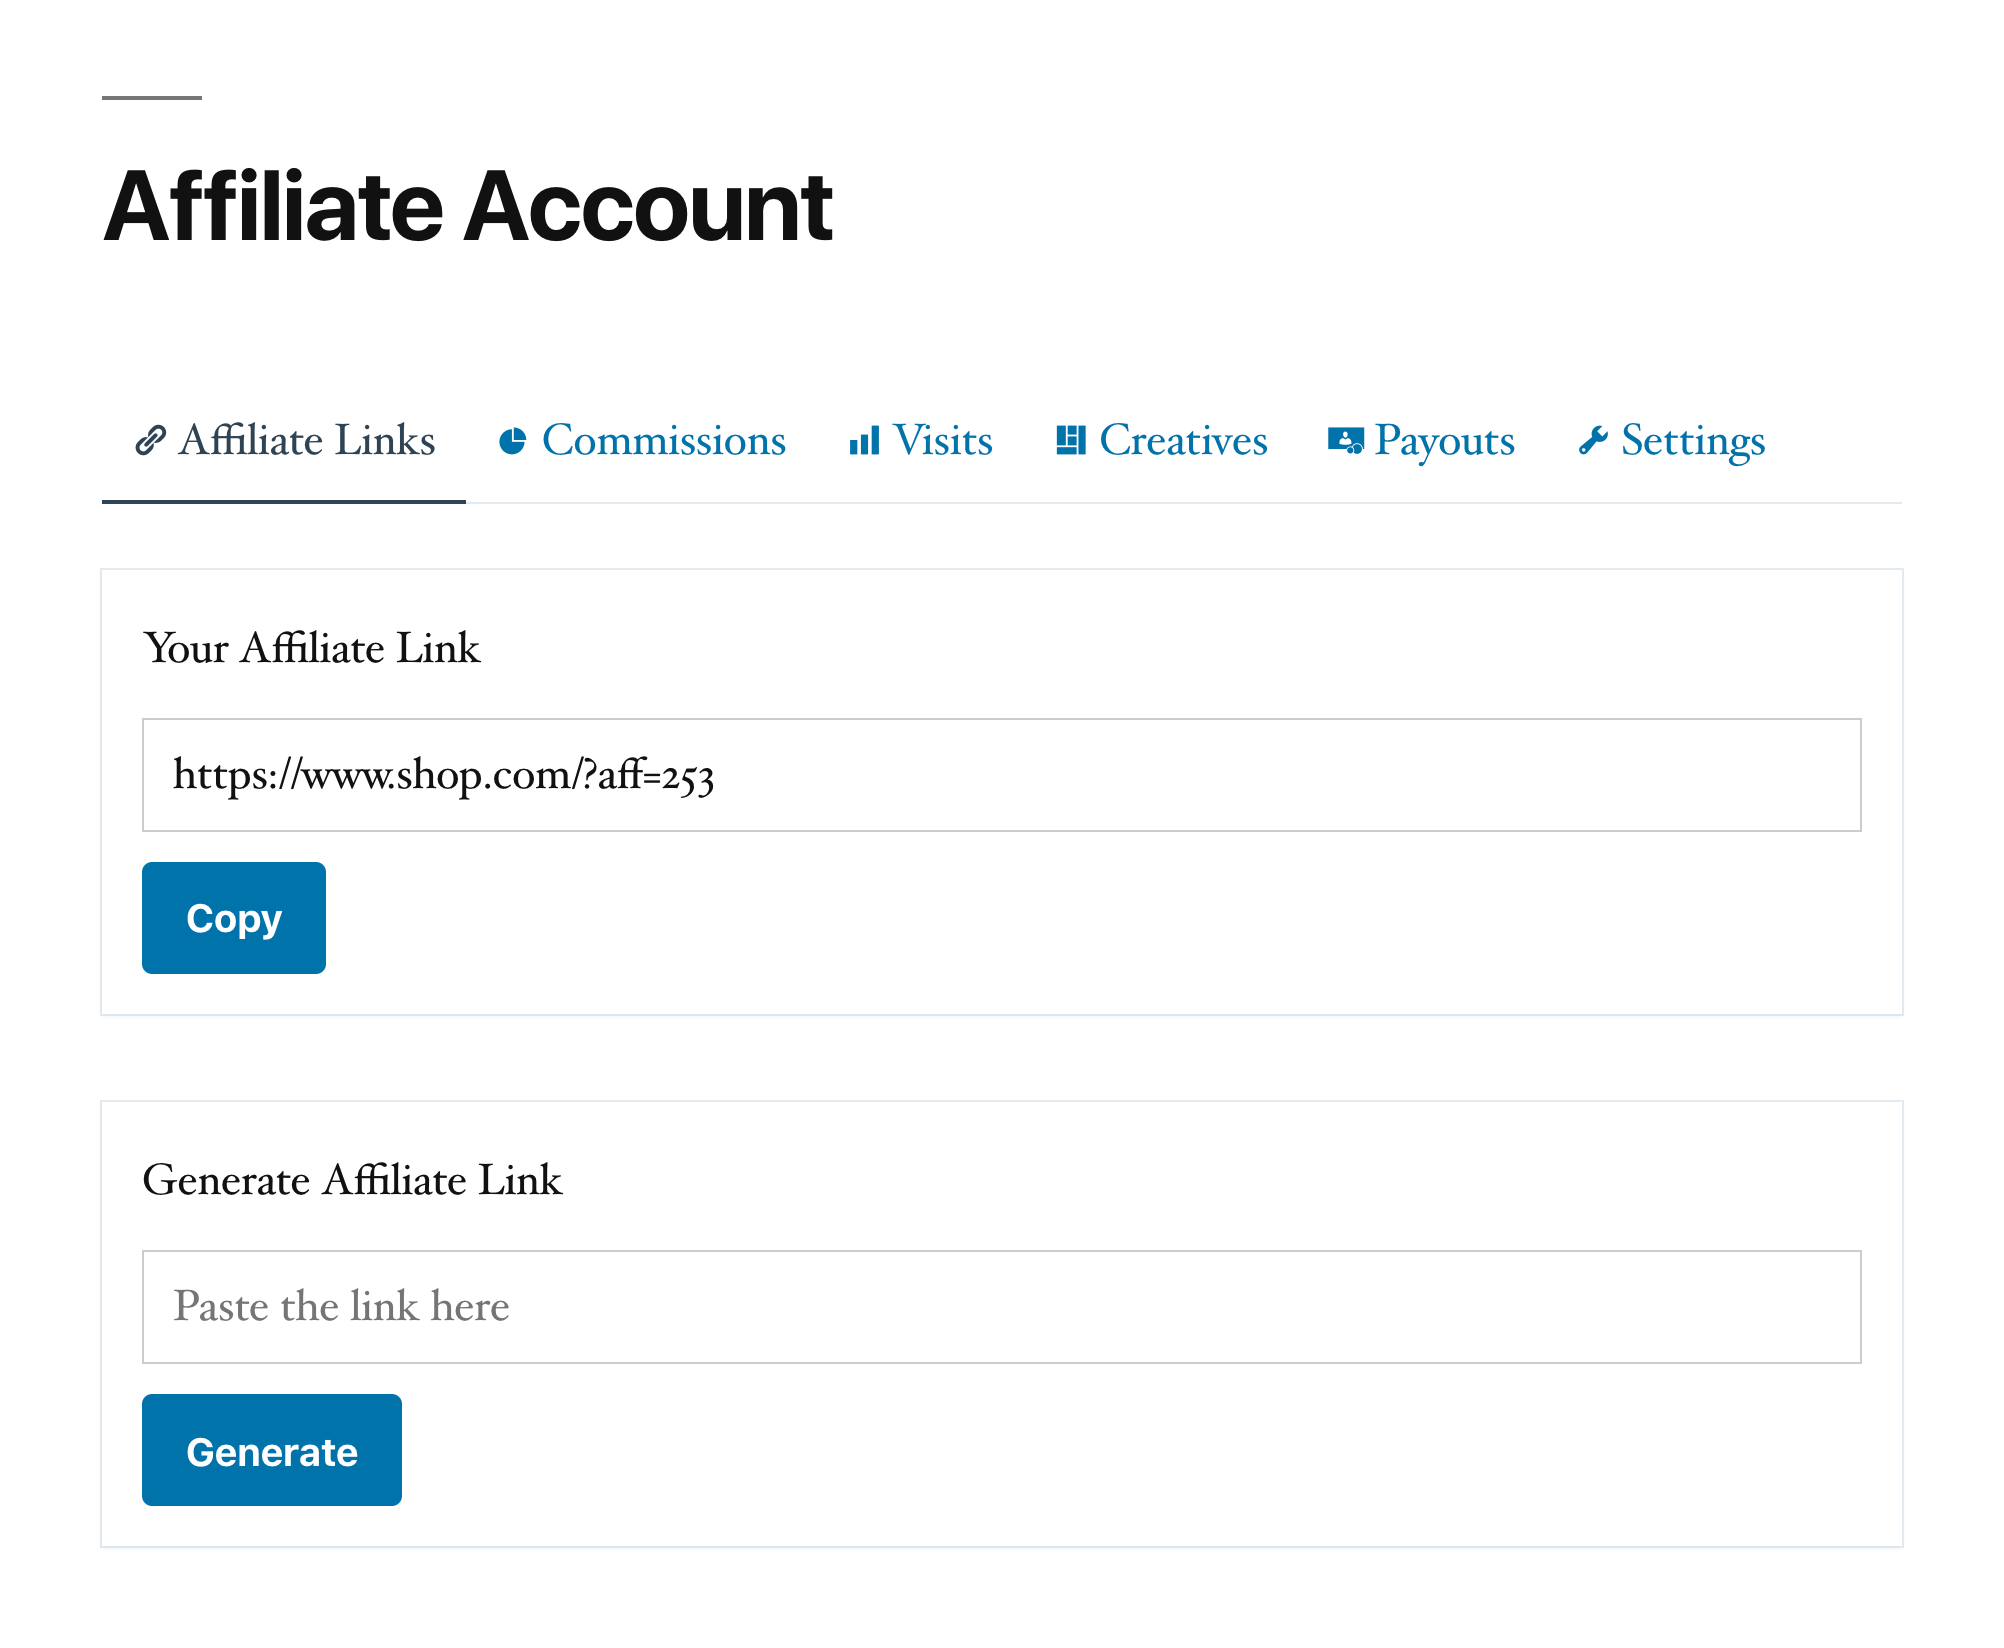 Example of affiliate account page shown to affiliate partners